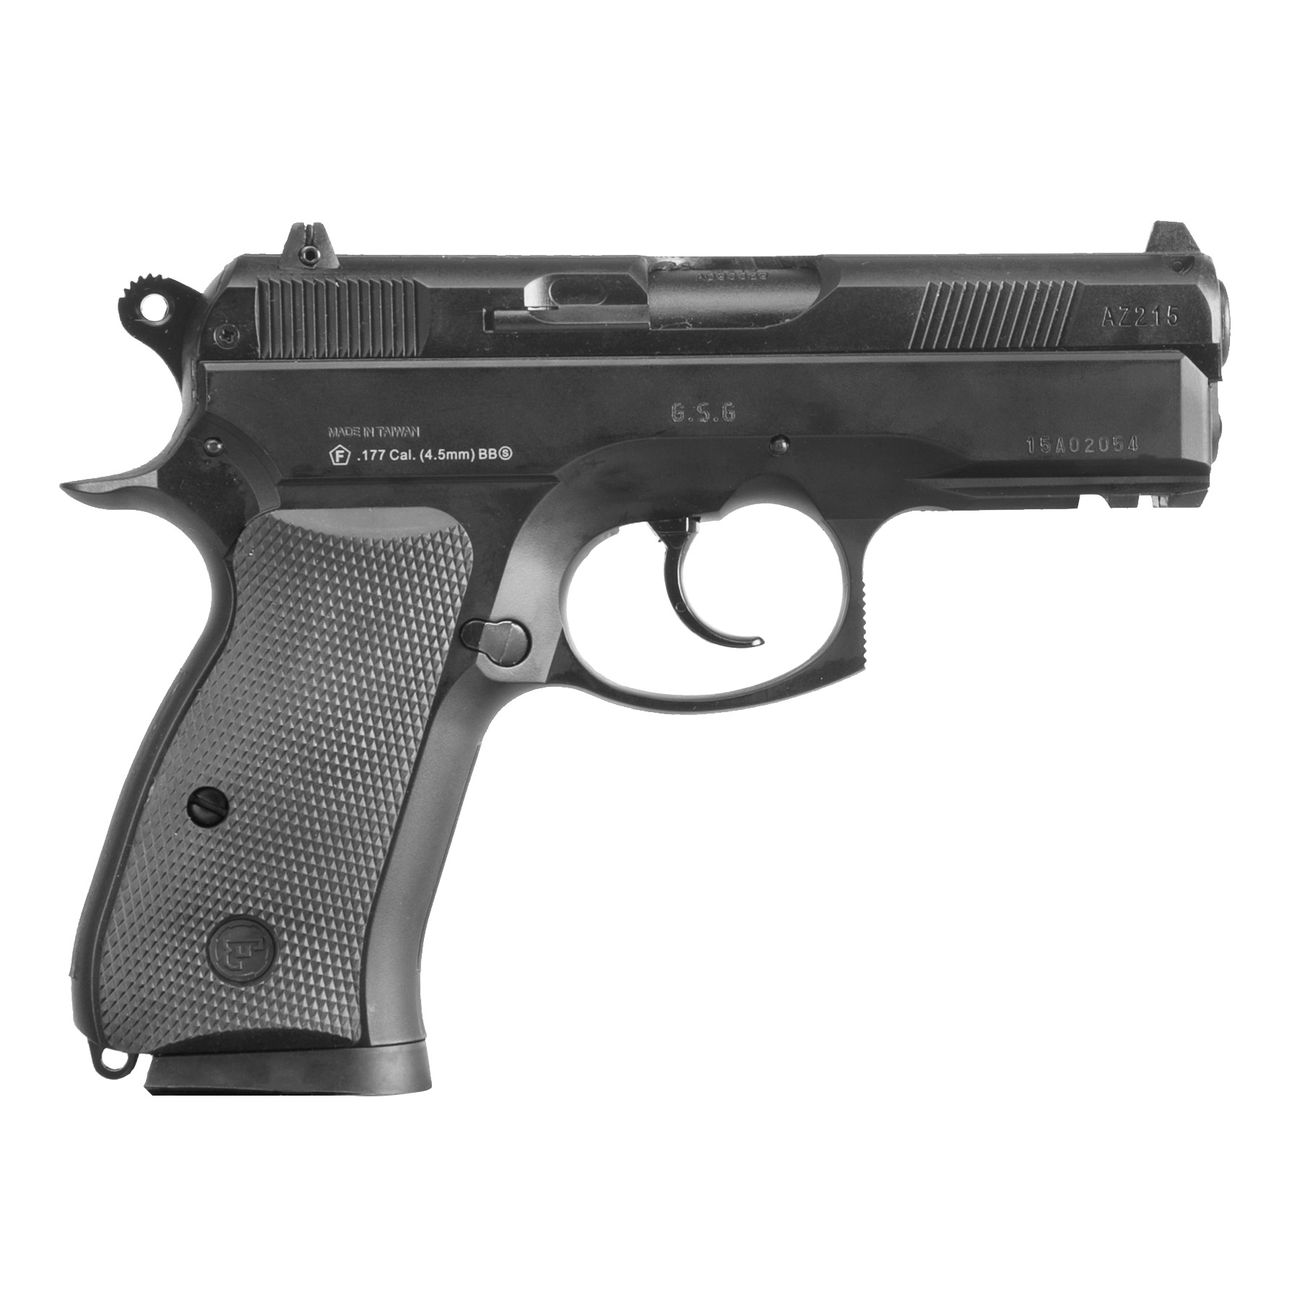 ASG CZ 75D Compact CO2 Luftpistole 4,5mm BB 4